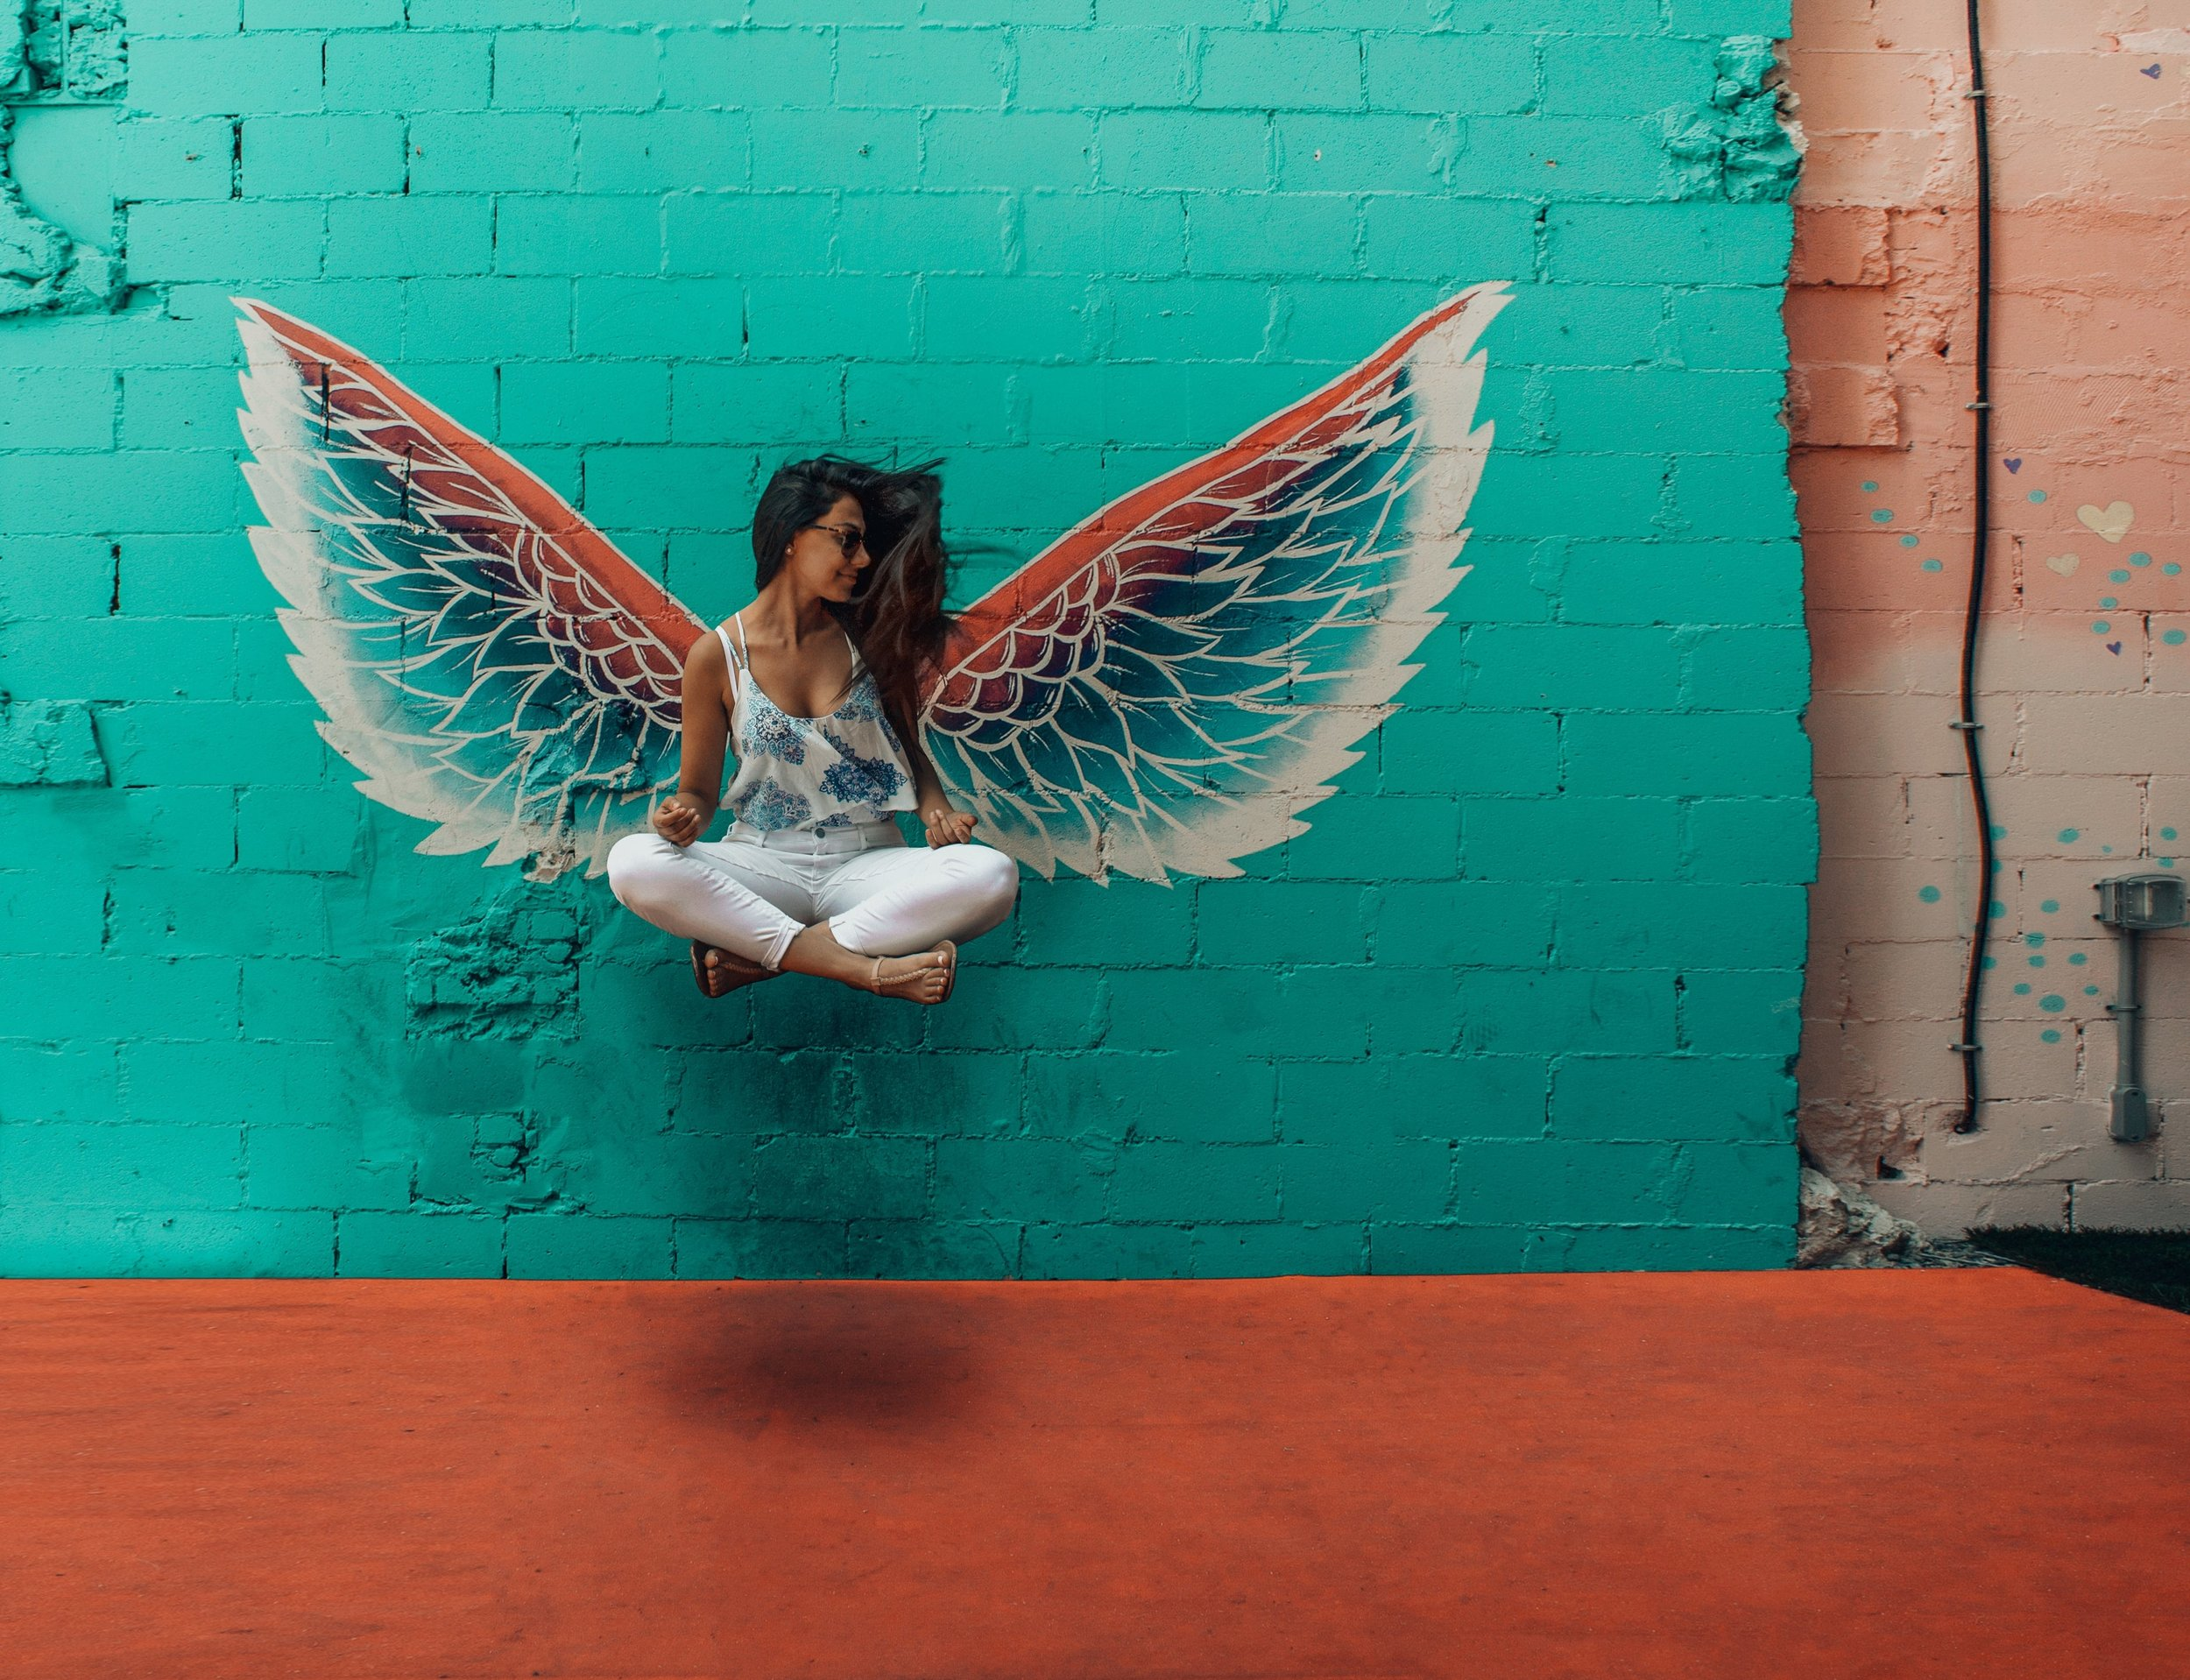 Amanda Robins Psychotherapy. Spread your wings and fly with psychotherapy for complex trauma in Melbourne. Schedule your free 20 minute consultation now.